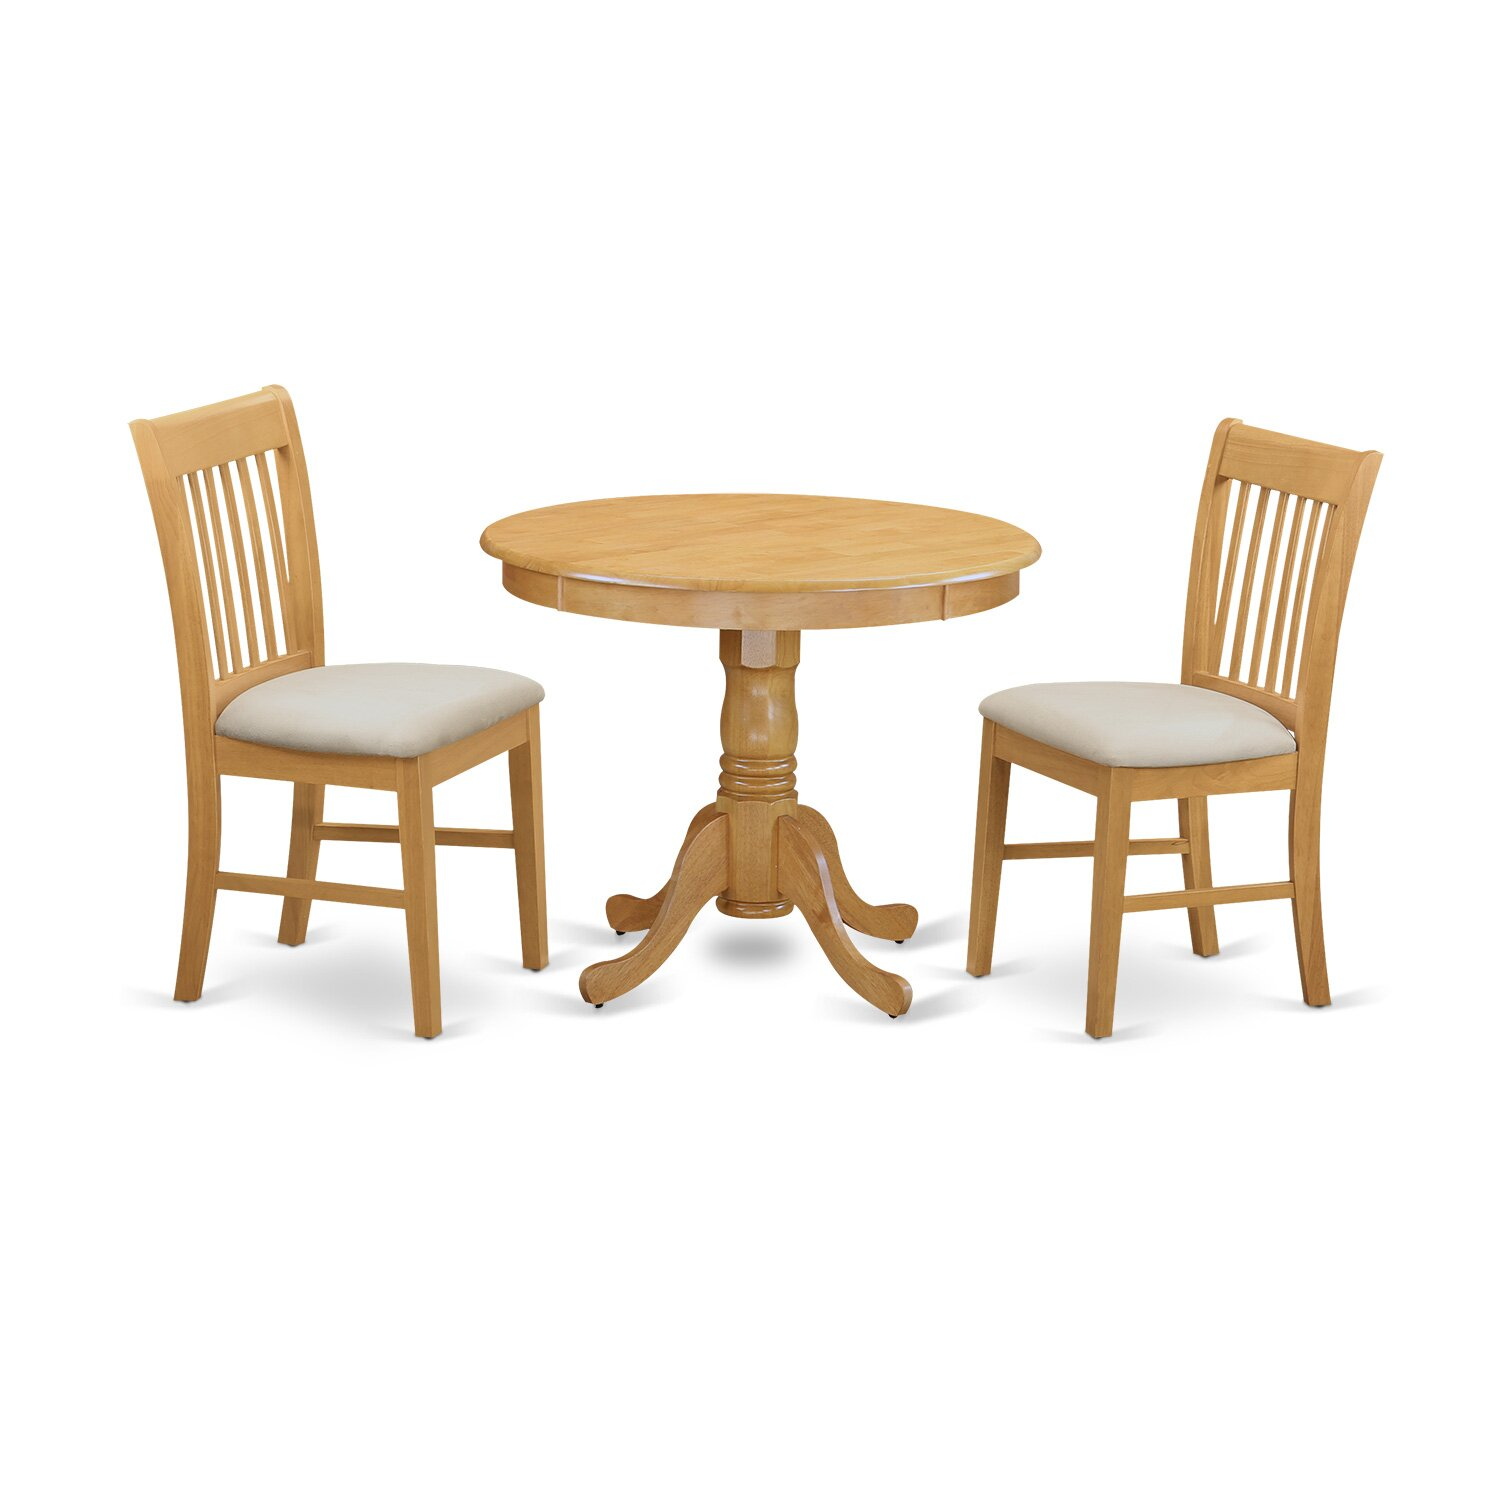 East west 3 piece dining set for 3 piece dining room